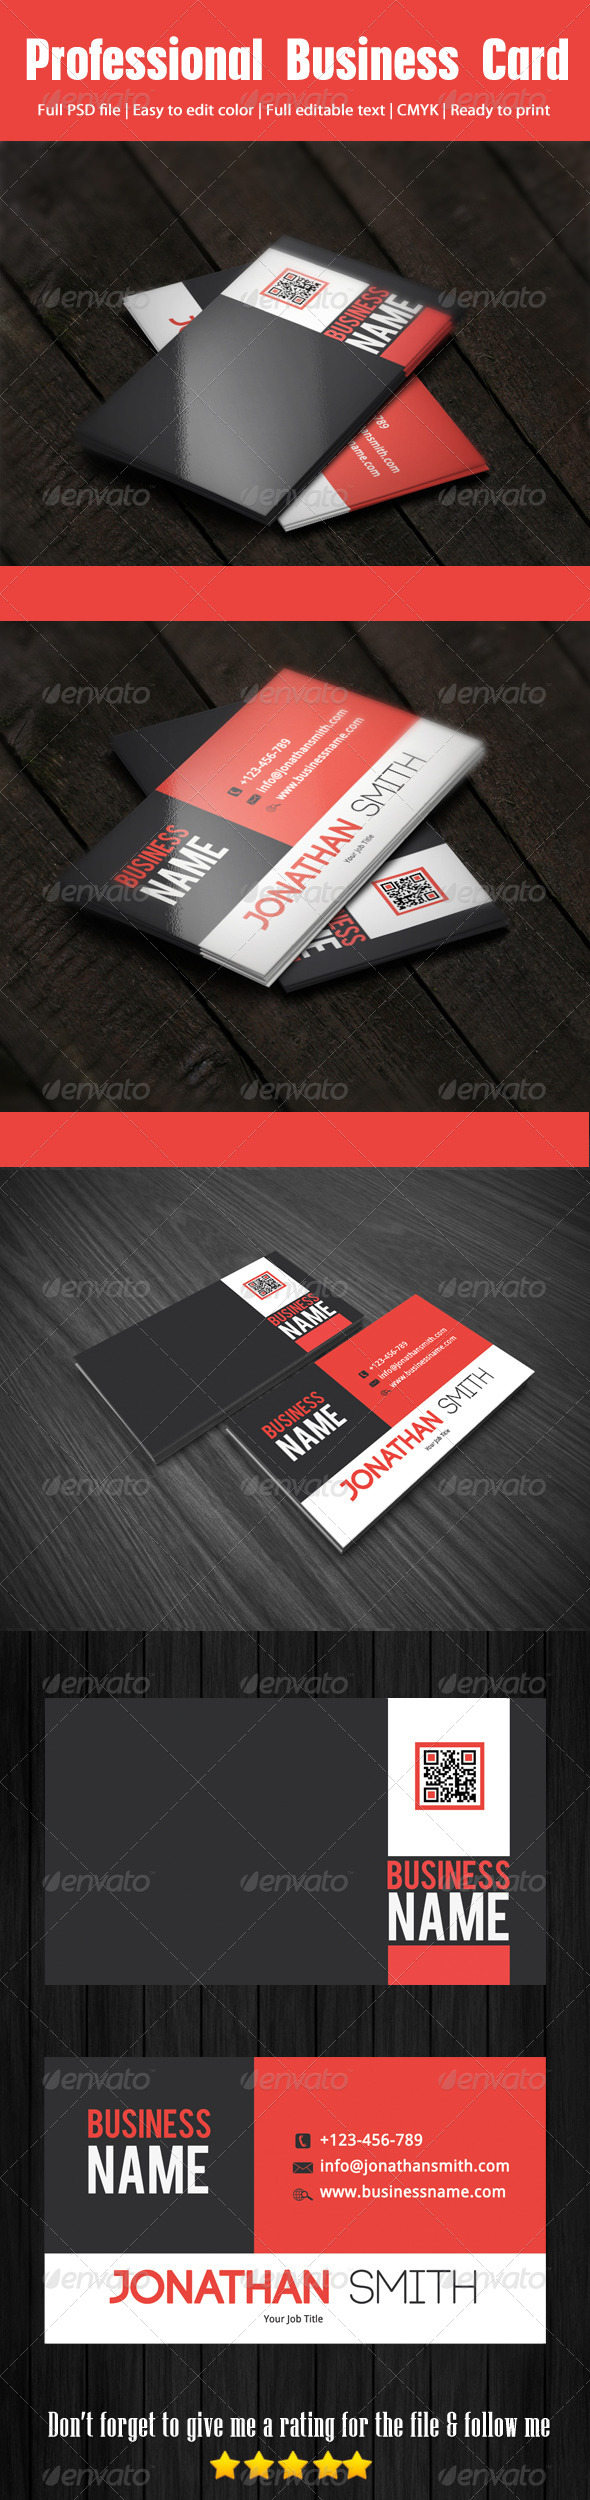 GraphicRiver Professional Business Card 4166854